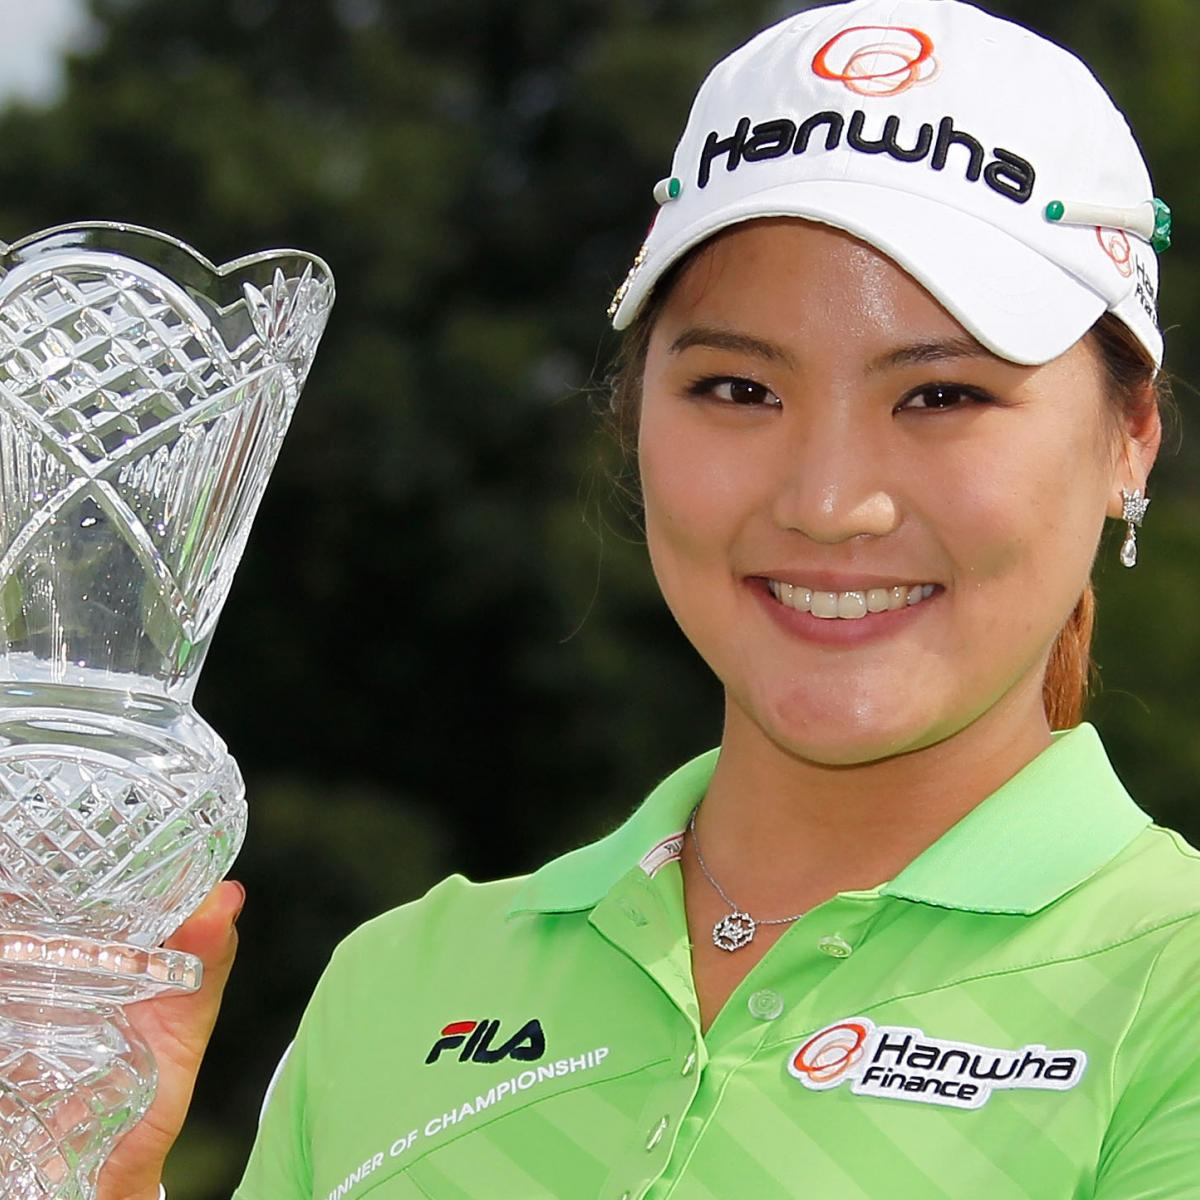 LPGA Rookie So Yeon Ryu Shoots 62 And Wins By 7 Shots At